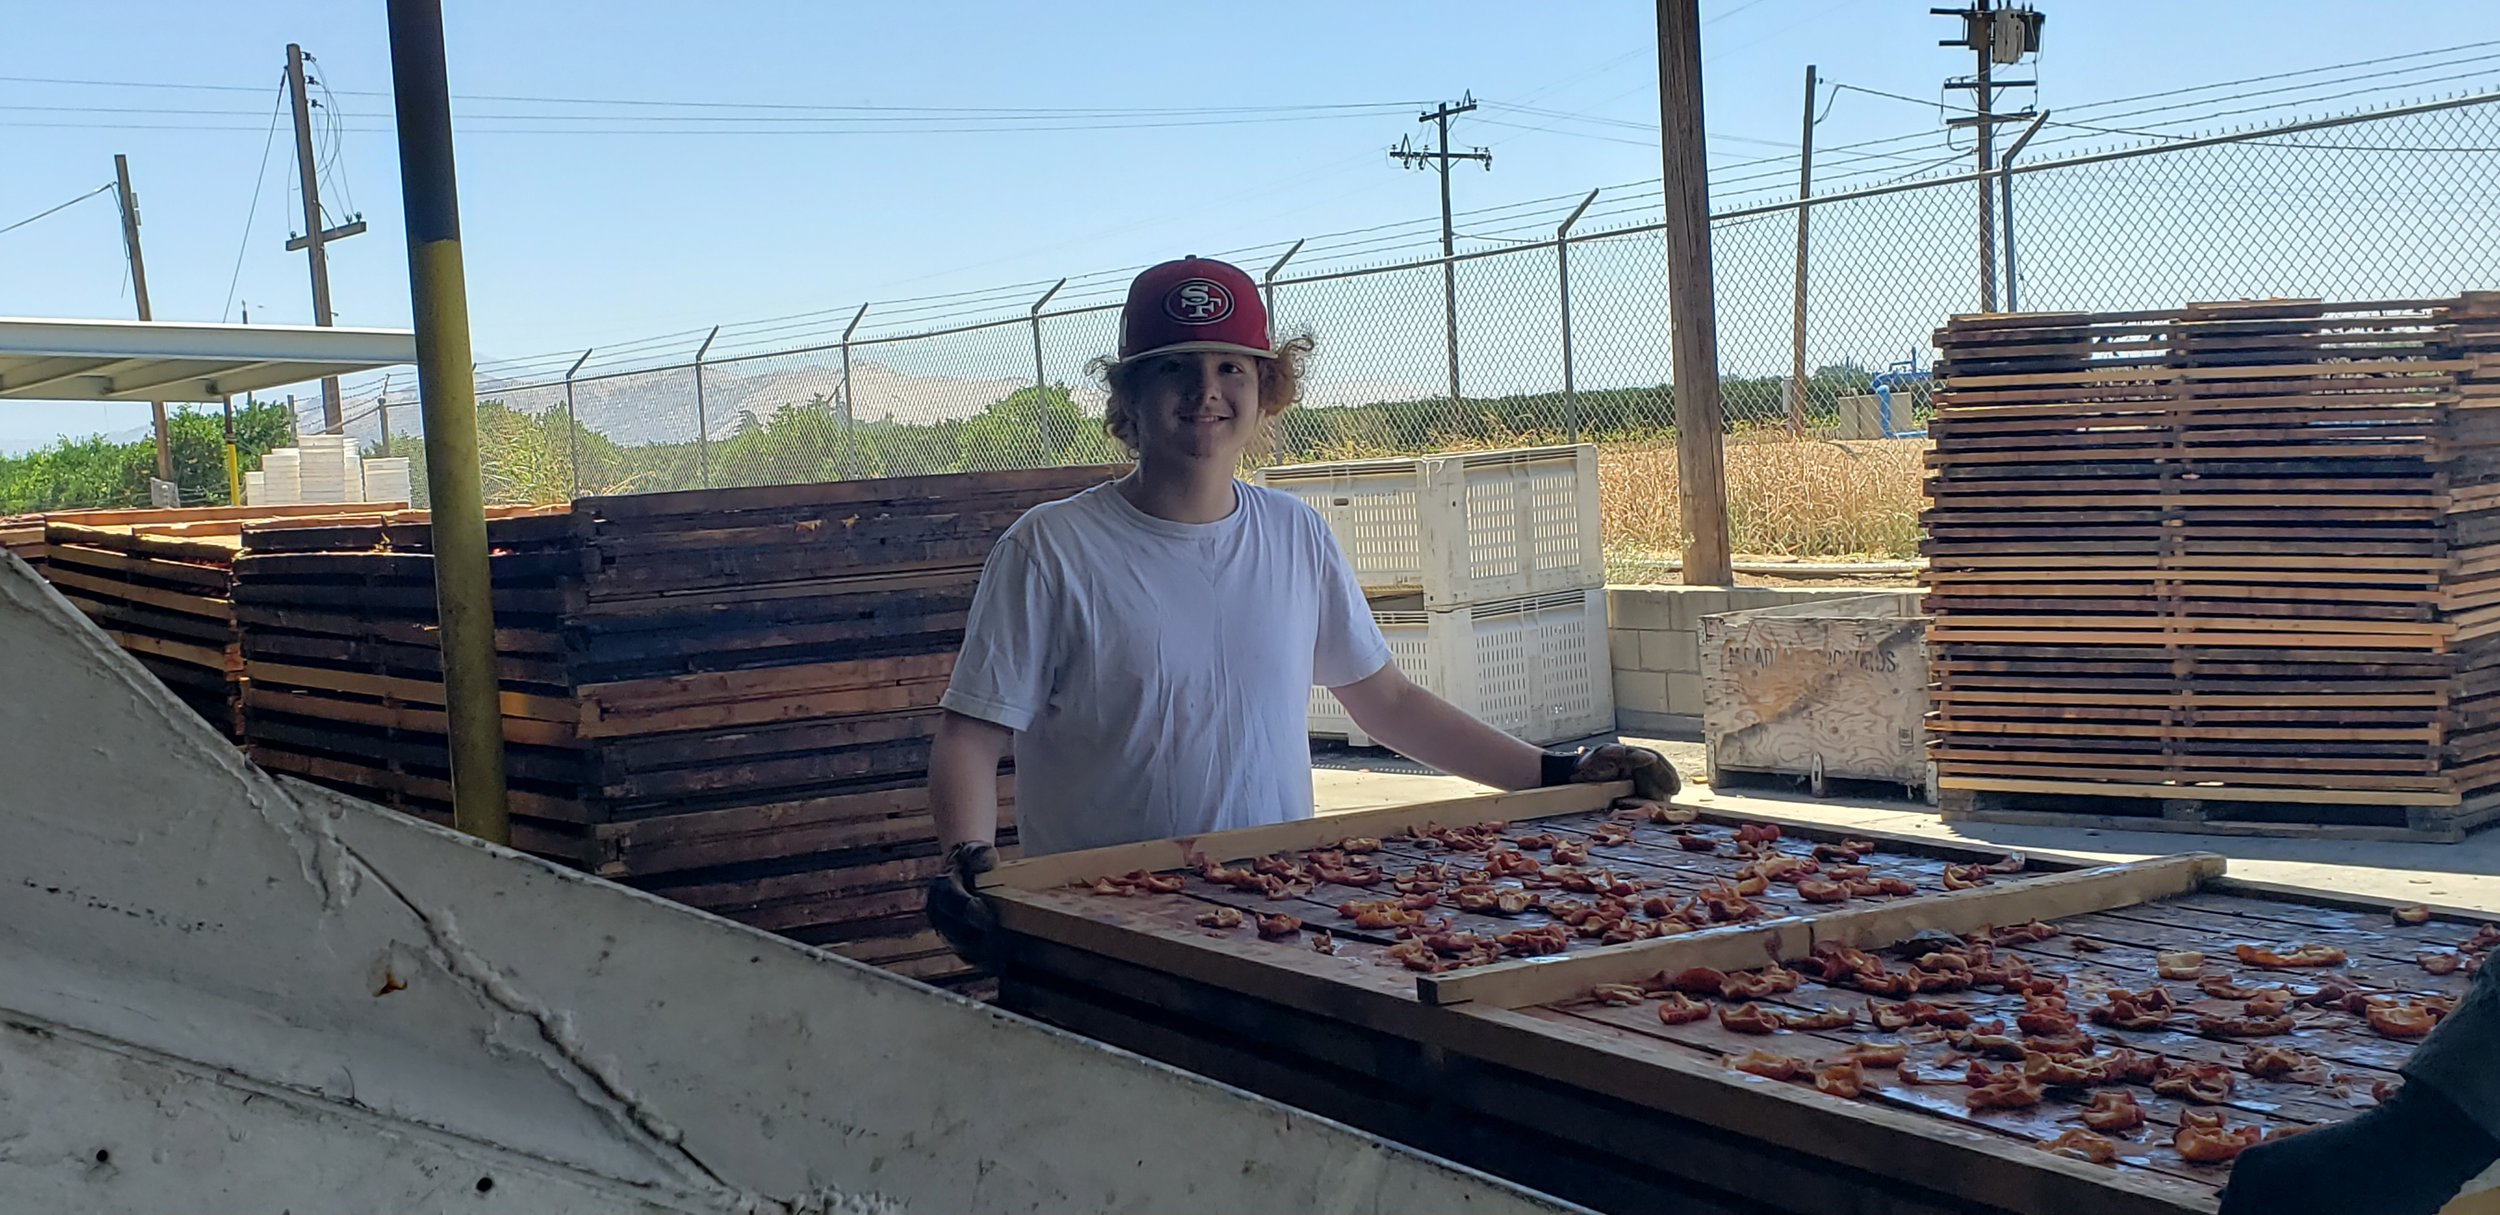 George worked super hard in dried fruit all day flipping pallets!